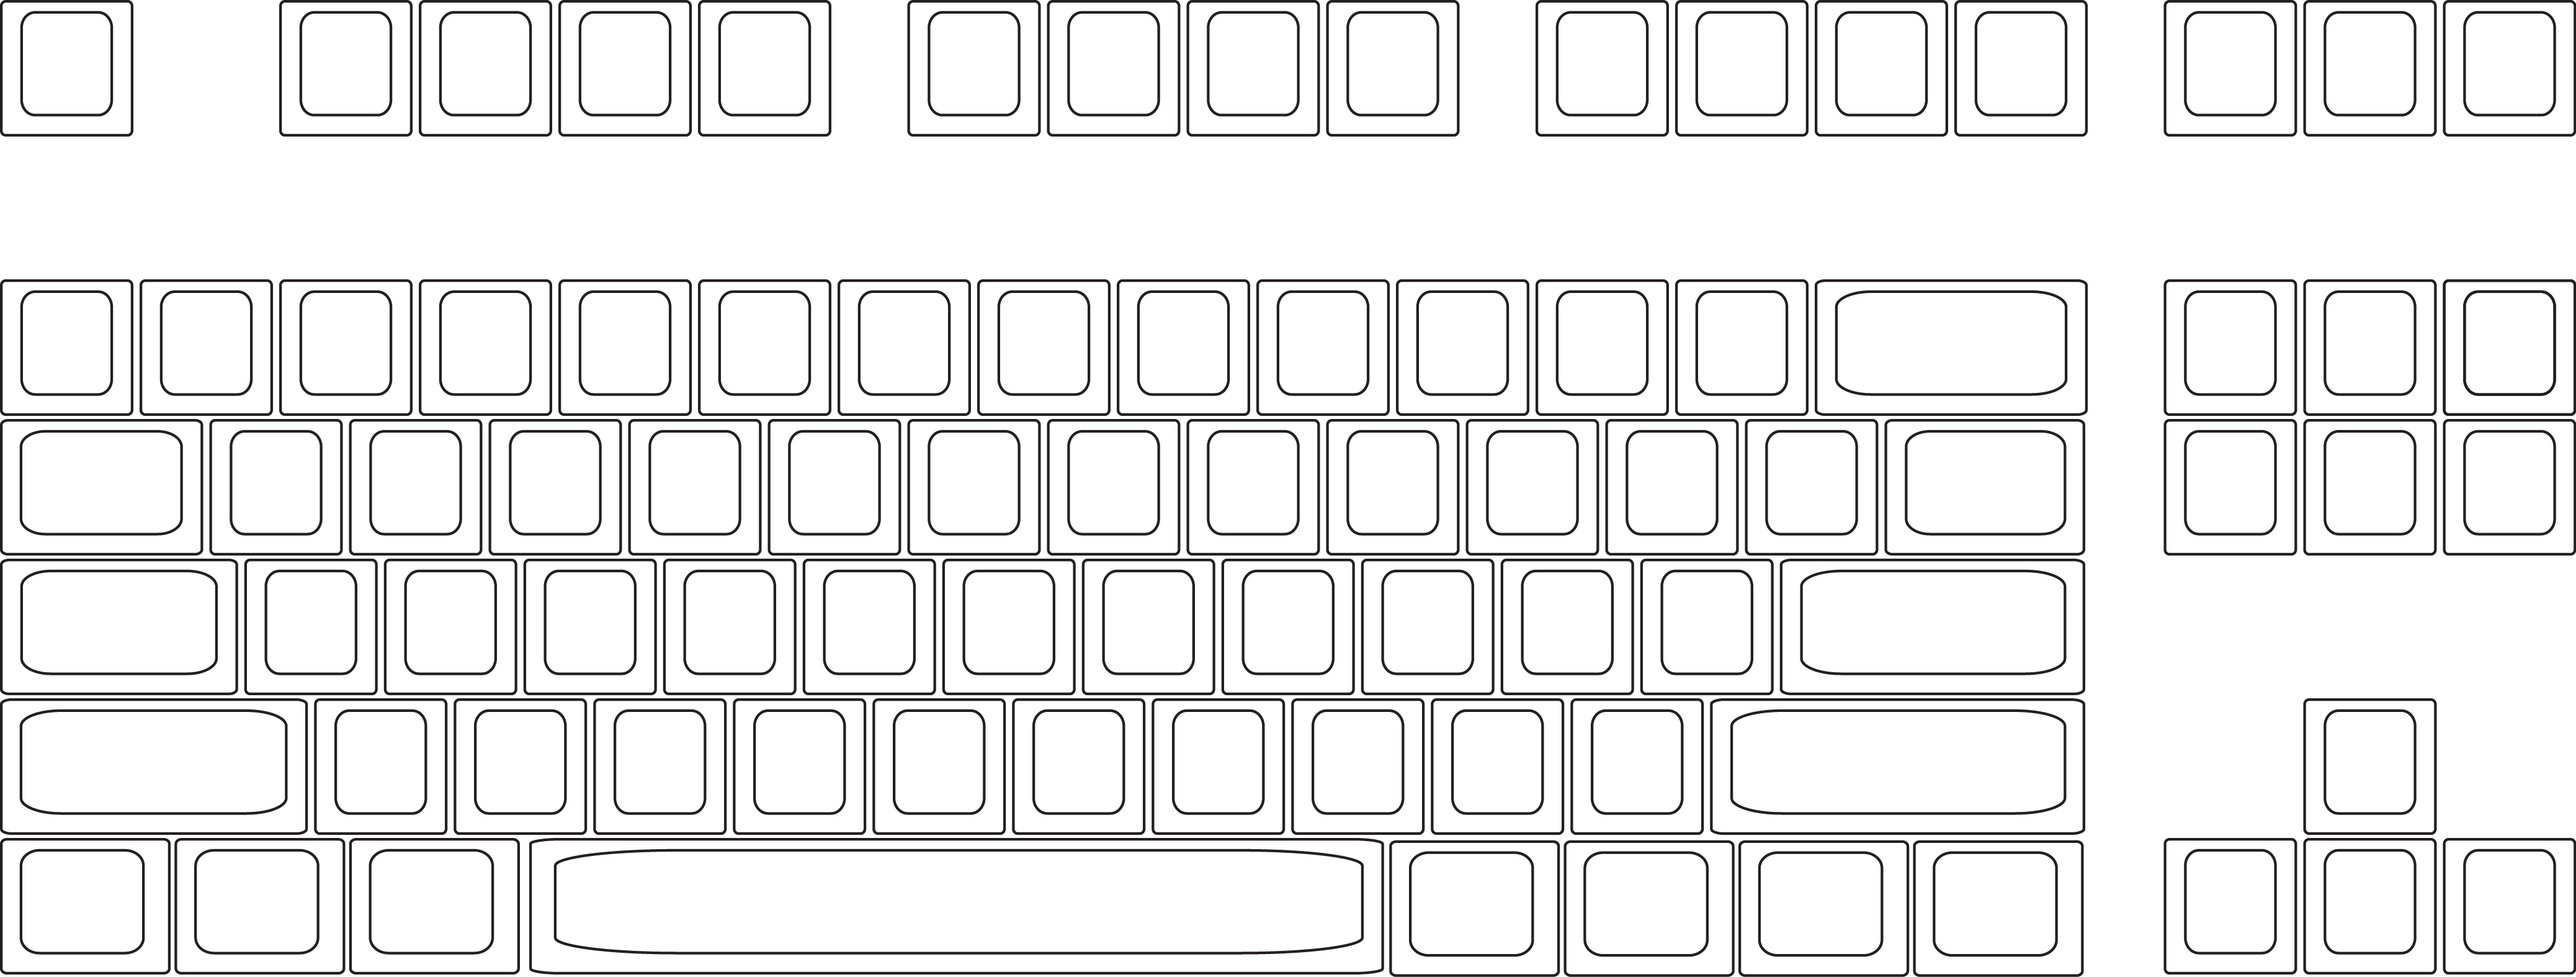 graphic regarding Printable Keyboard Stickers named Templates